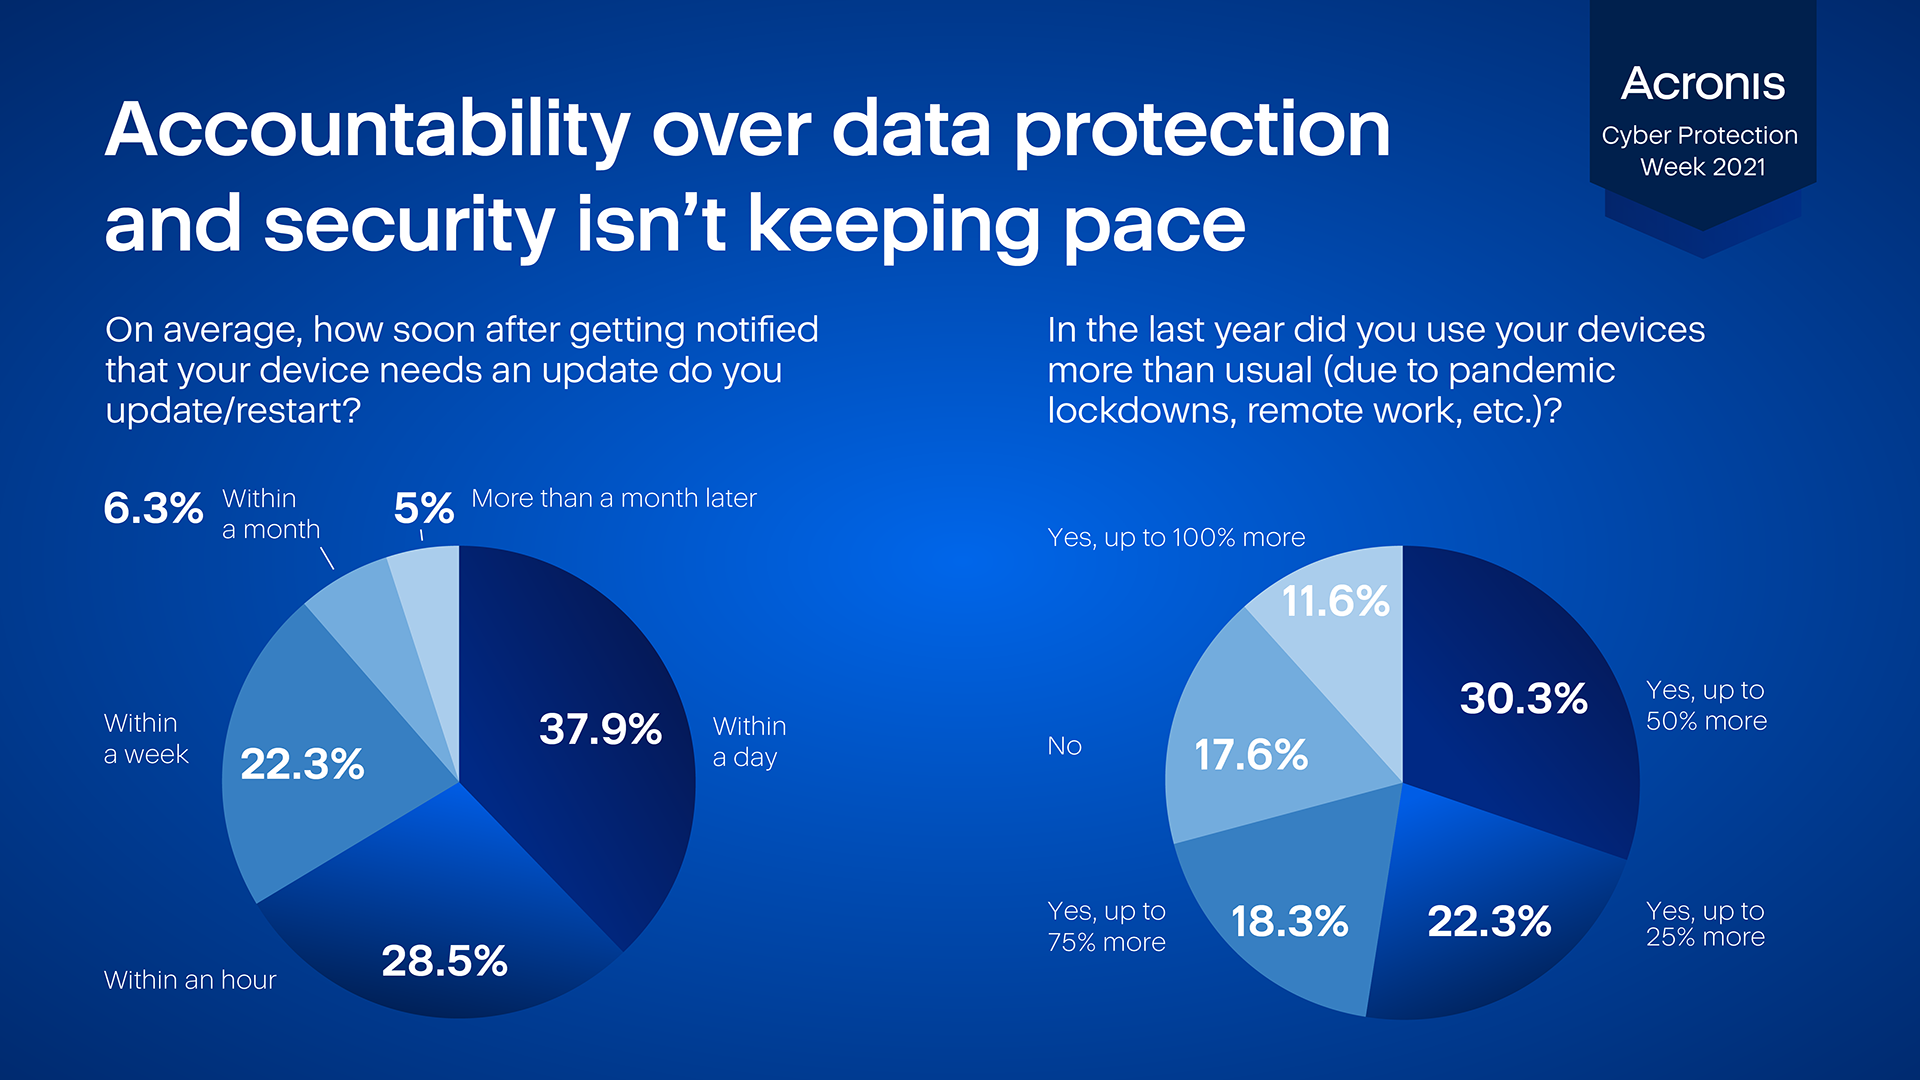 Accountability over data protection and security isn't keeping pace